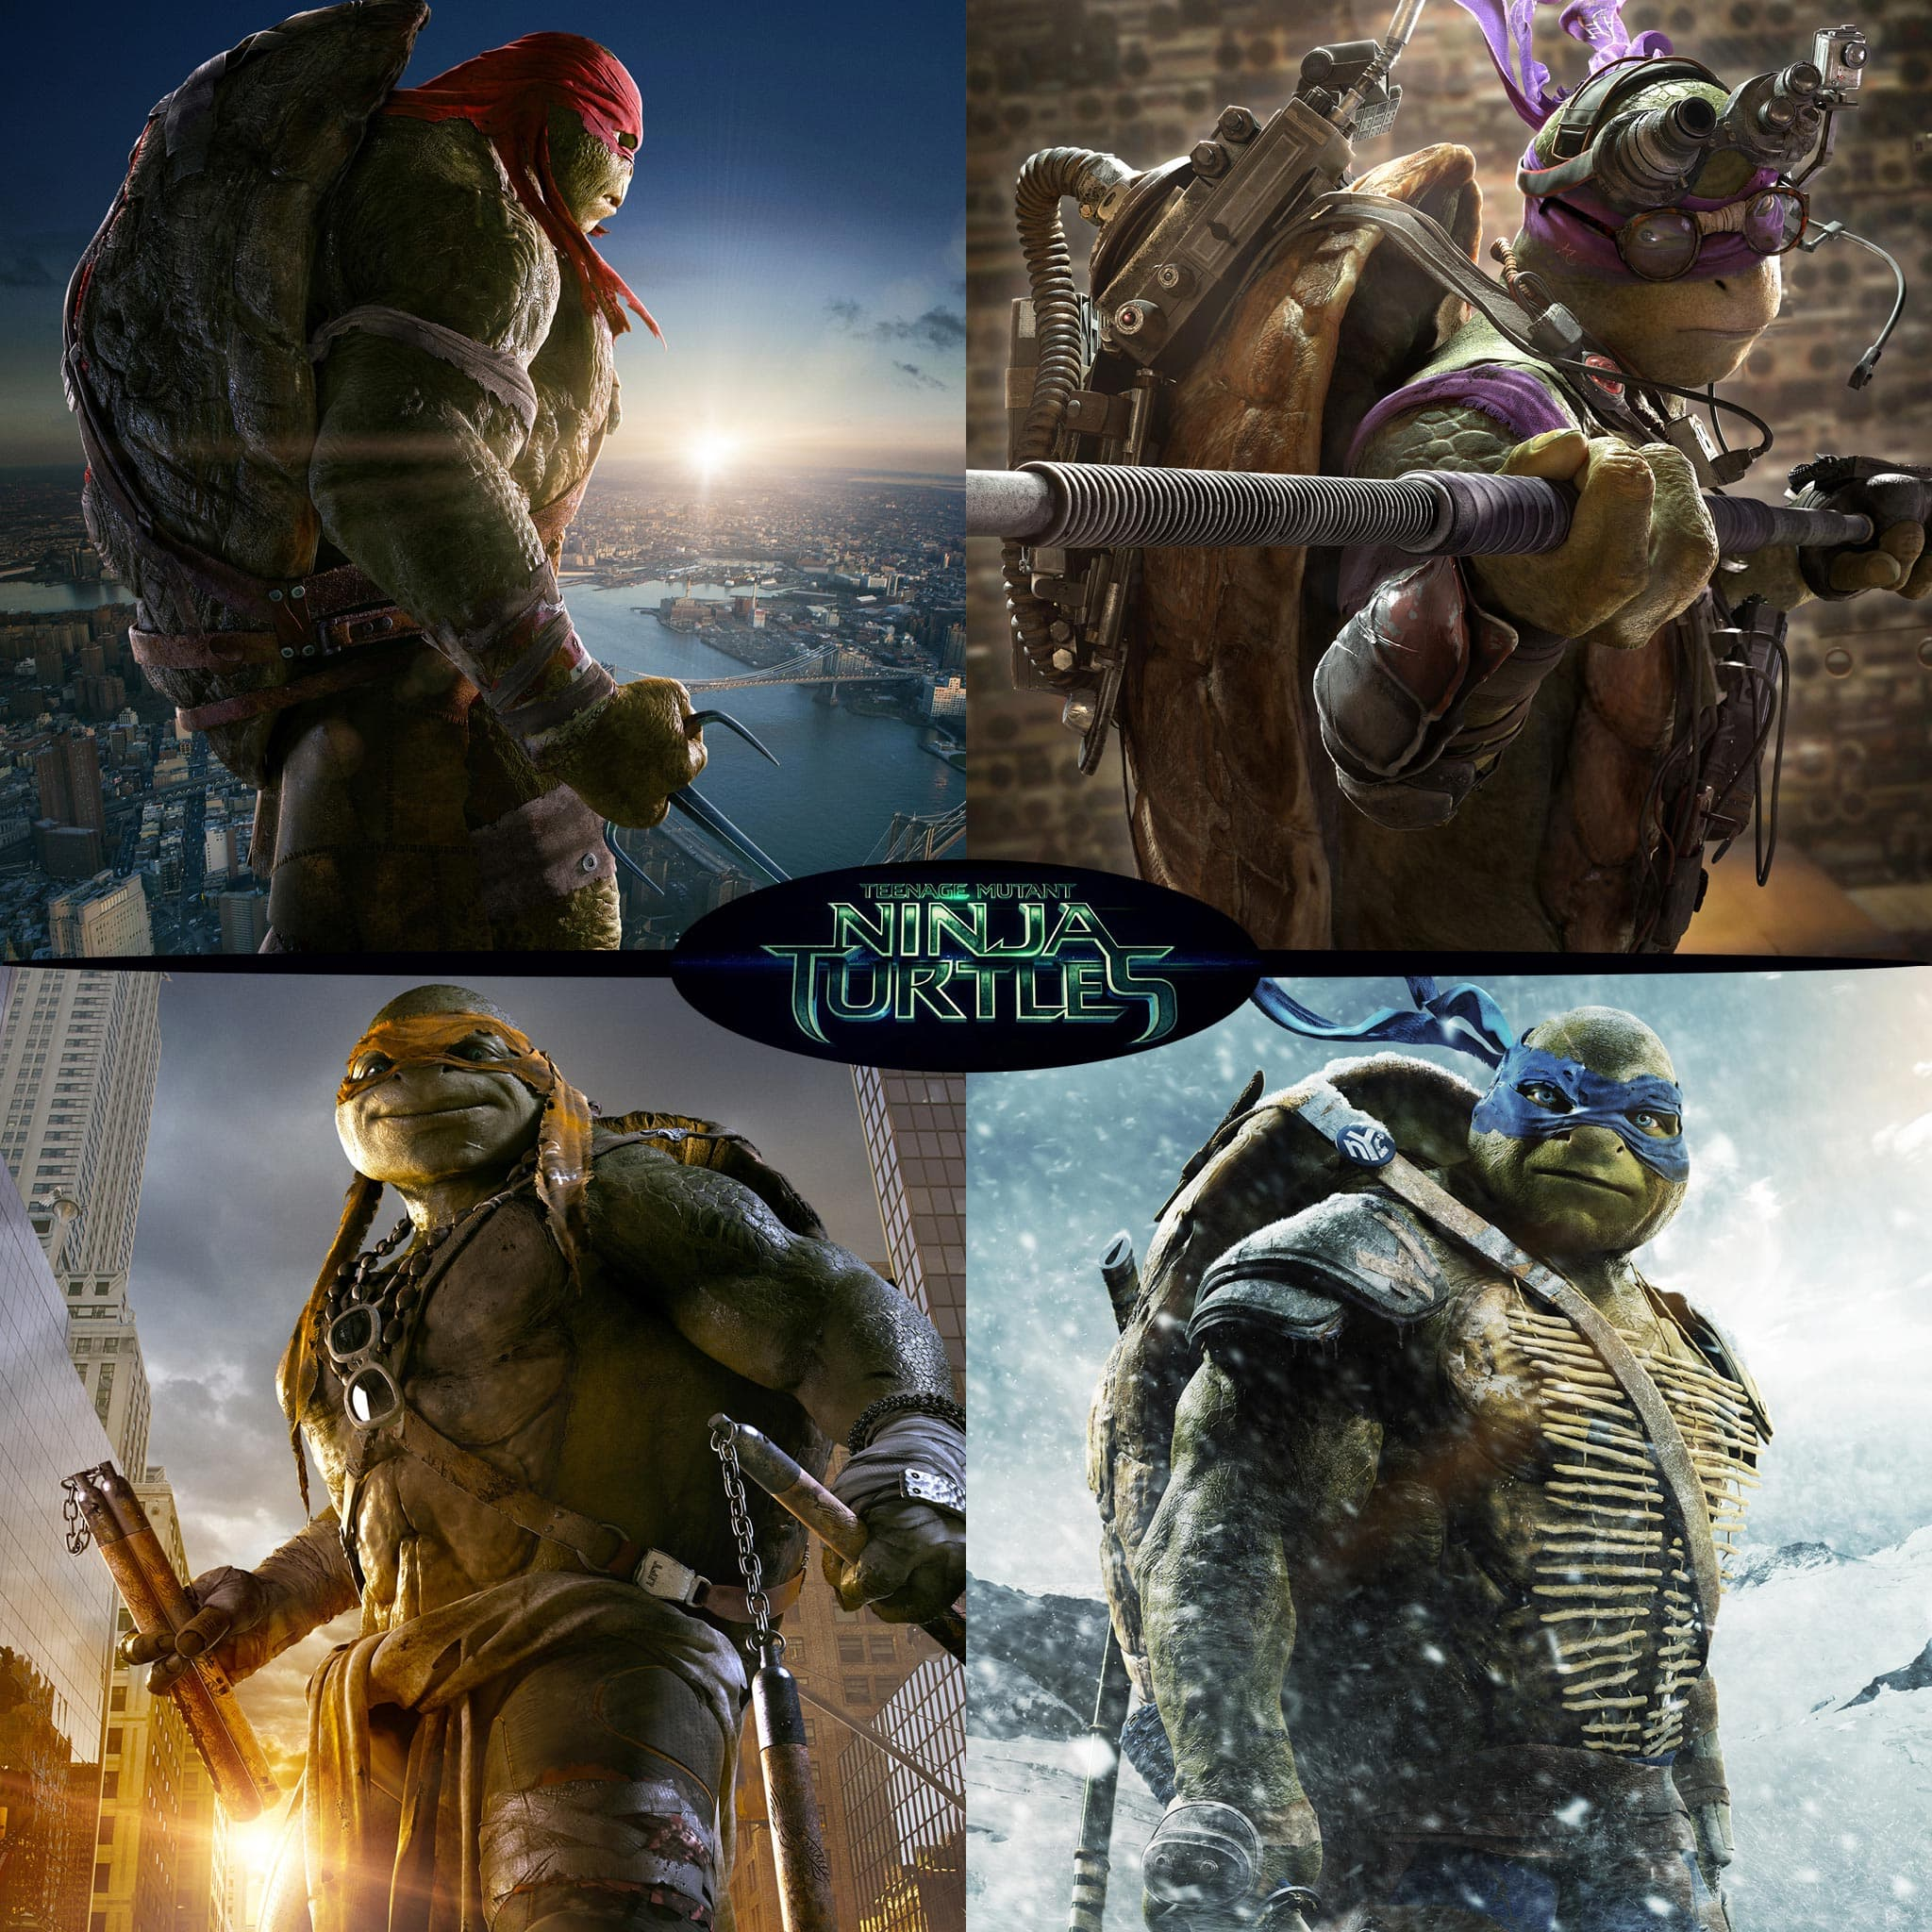 Teenage mutant ninja turtles hd desktop wallpapers 7wallpapers teenage mutant ninja turtles widescreen for desktop teenage mutant ninja turtles high voltagebd Gallery